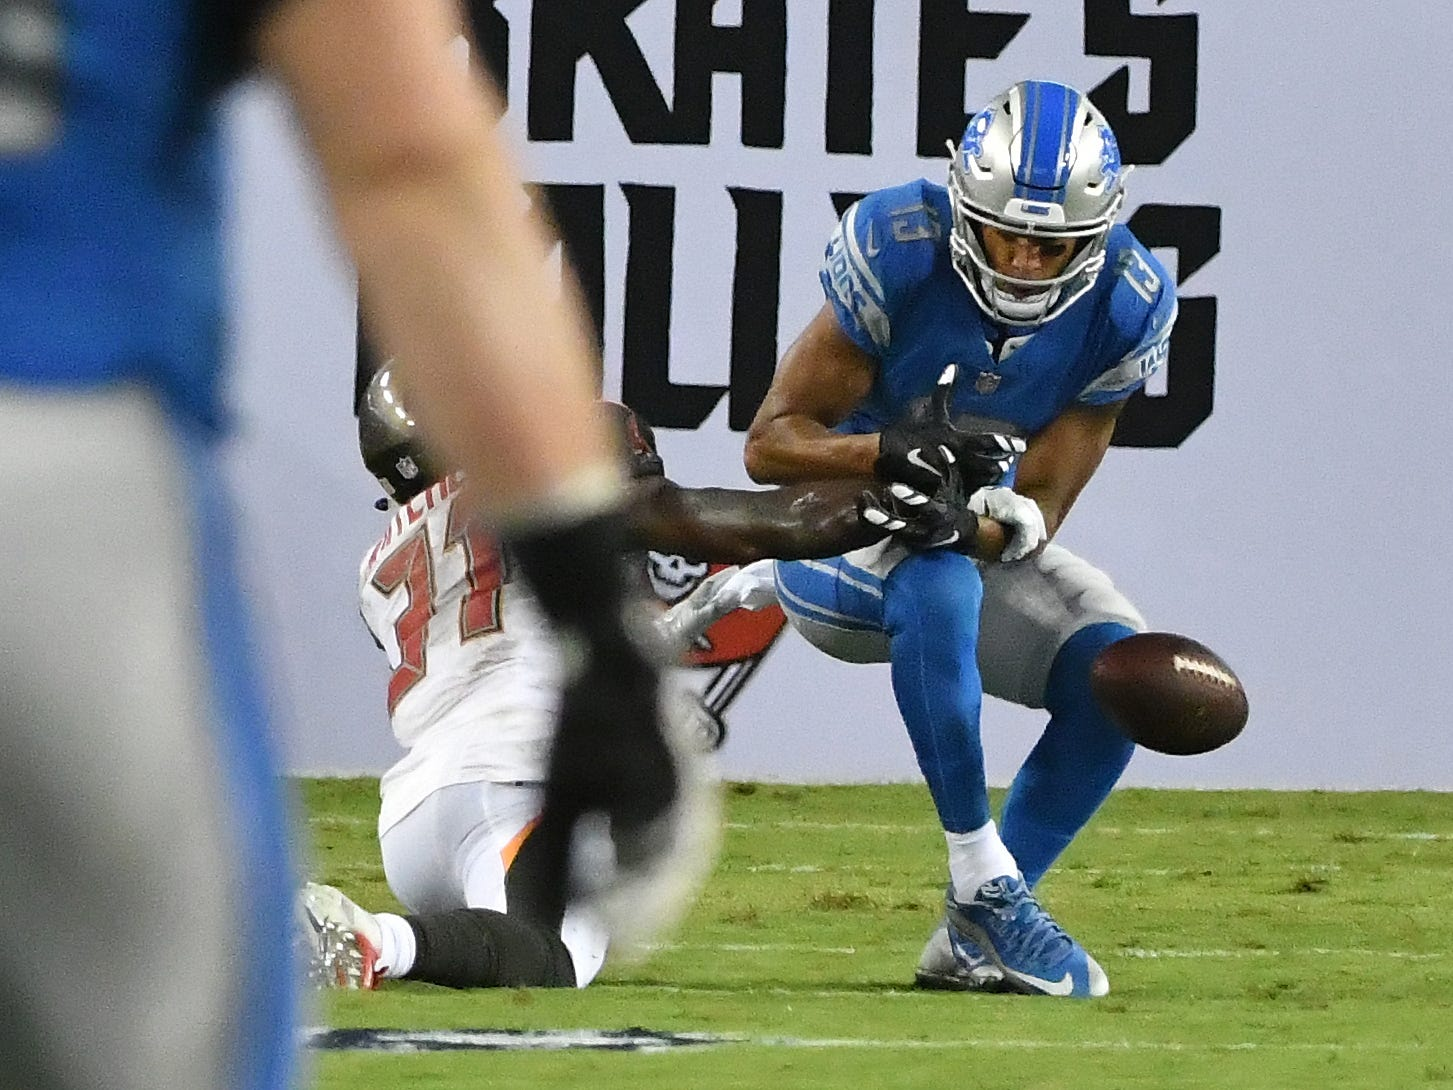 Lions' T.J. Jones can't pull in a reception but Buccaneers' Jordan Whitehead picks up a penalty on the play giving Detroit the first down in the second quarter.